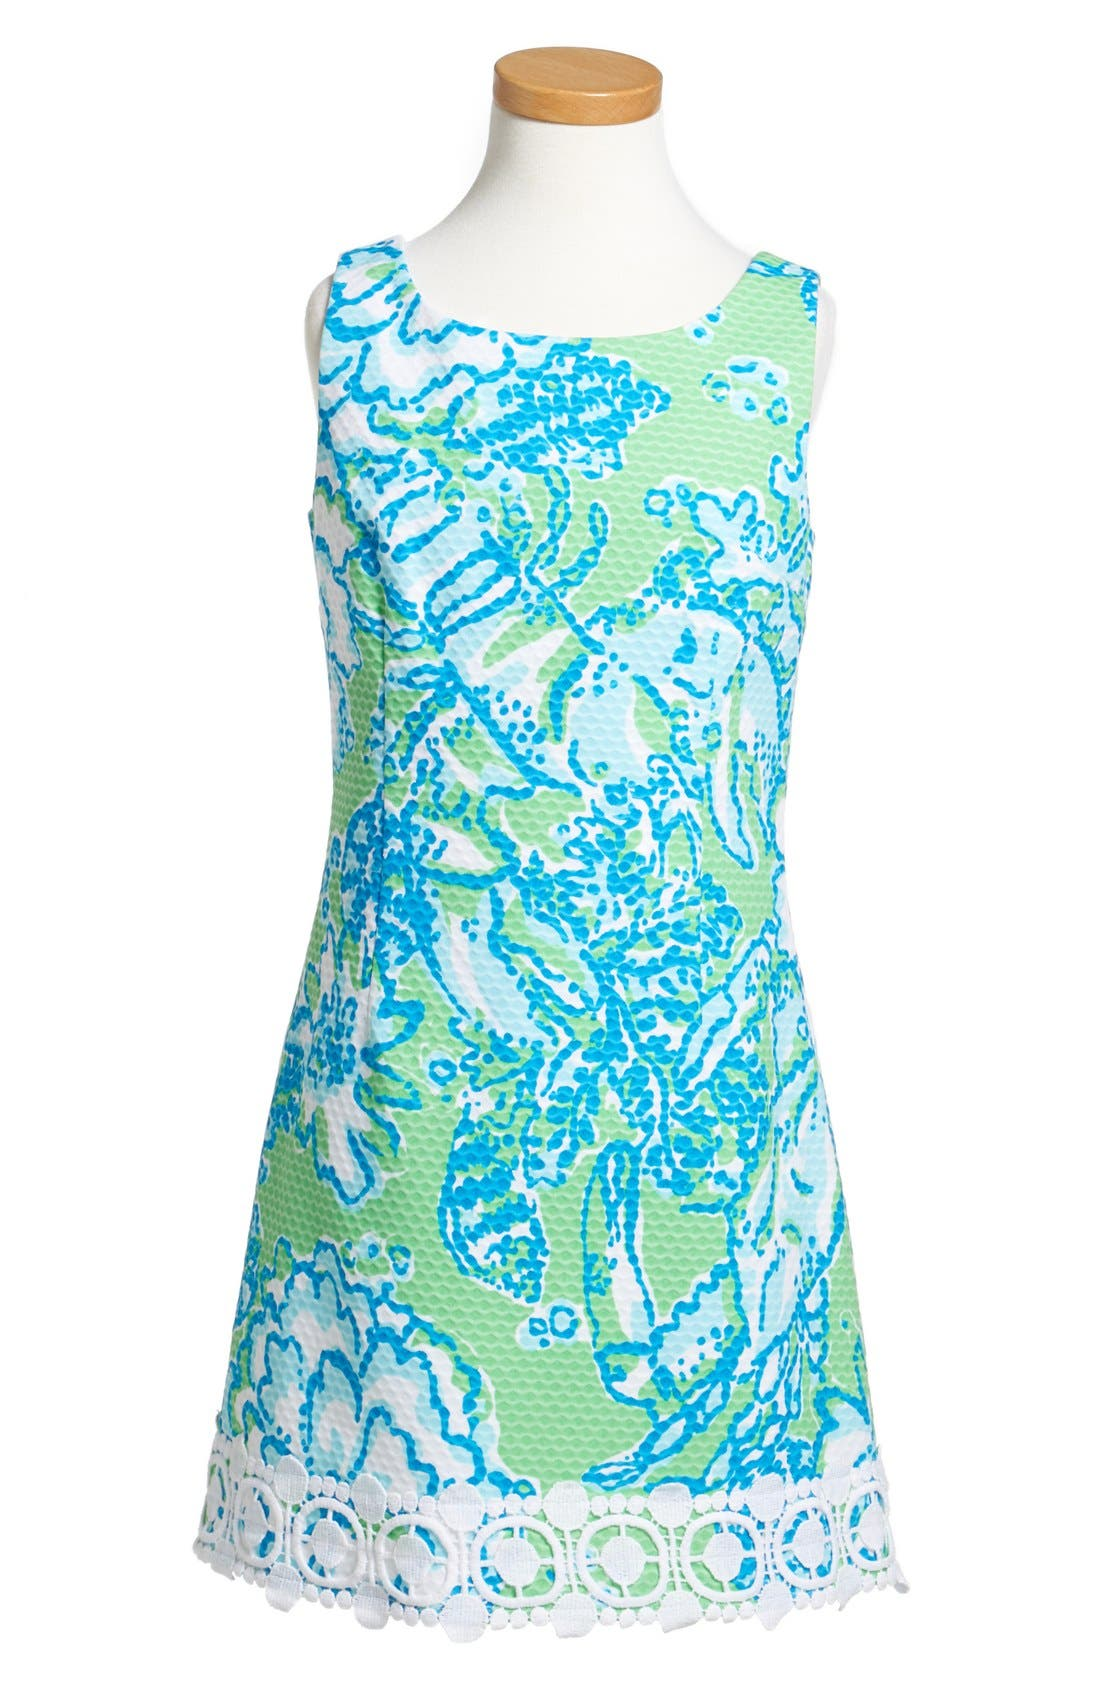 Alternate Image 1 Selected - Lilly Pulitzer® 'Little Delia' Sleeveless Piqué Dress (Little Girls & Big Girls)